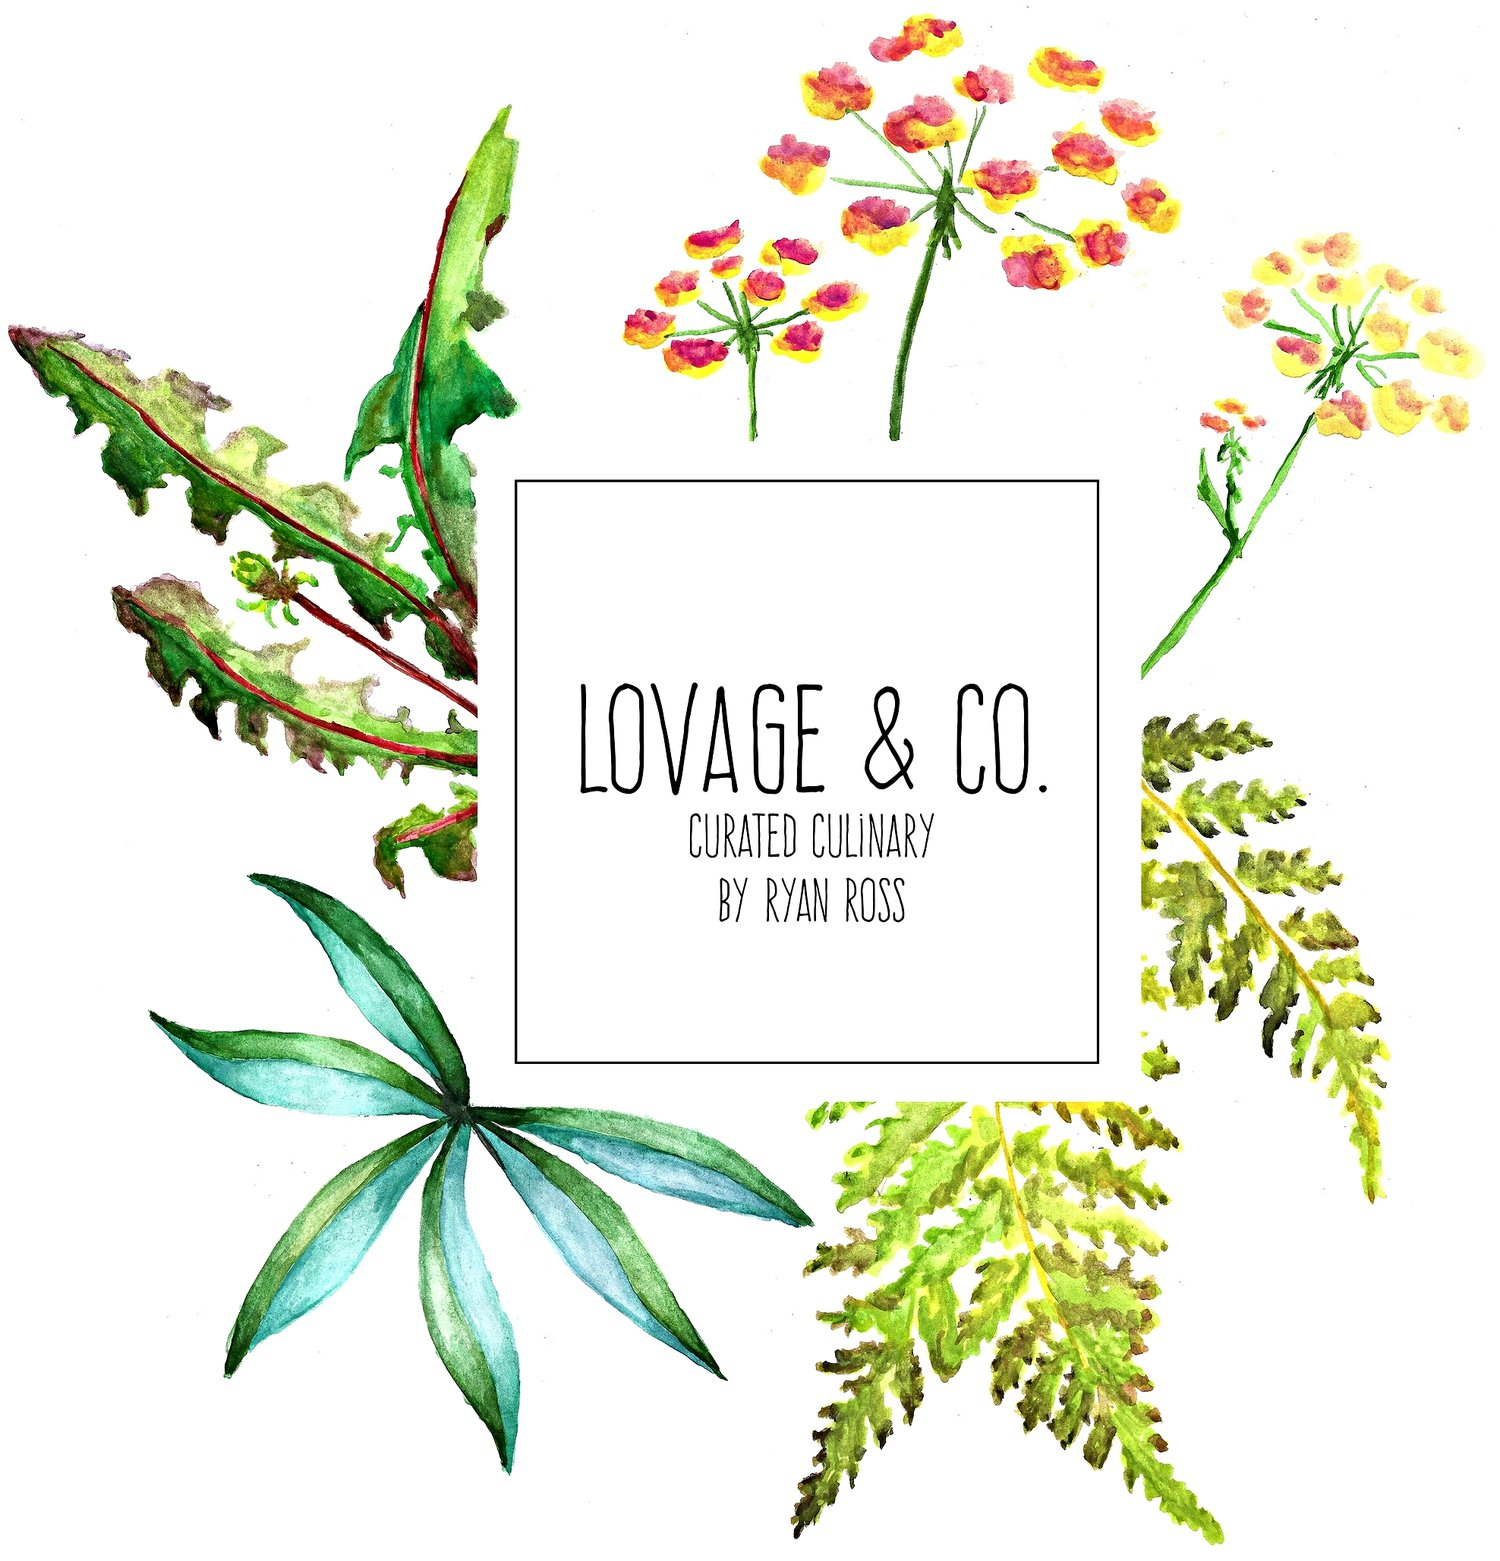 Lovage & Co.